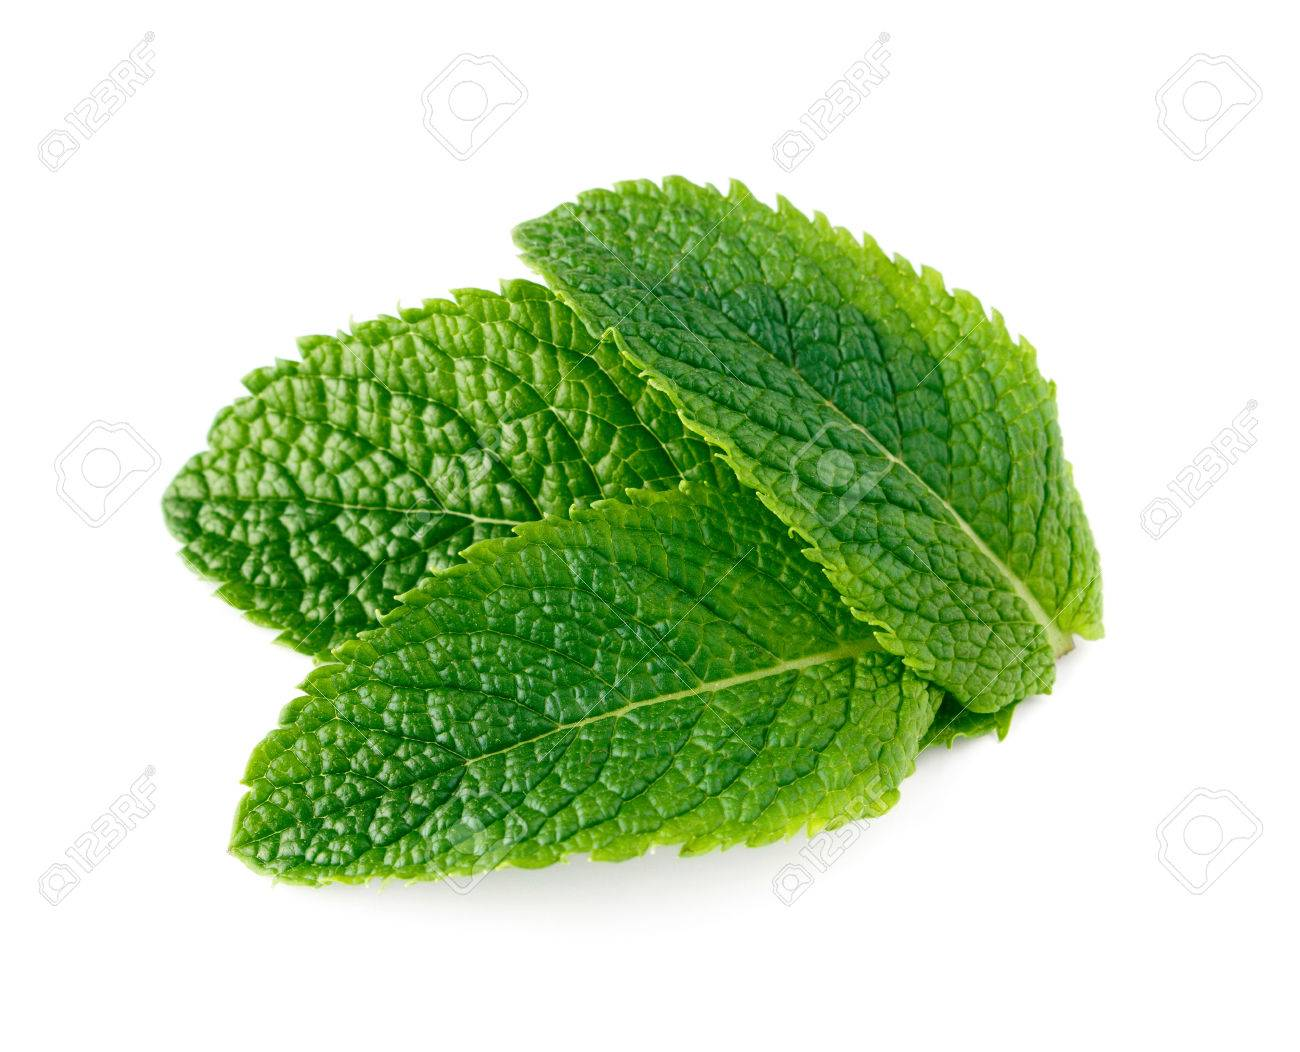 mint leaves isolated on white background - 60230138